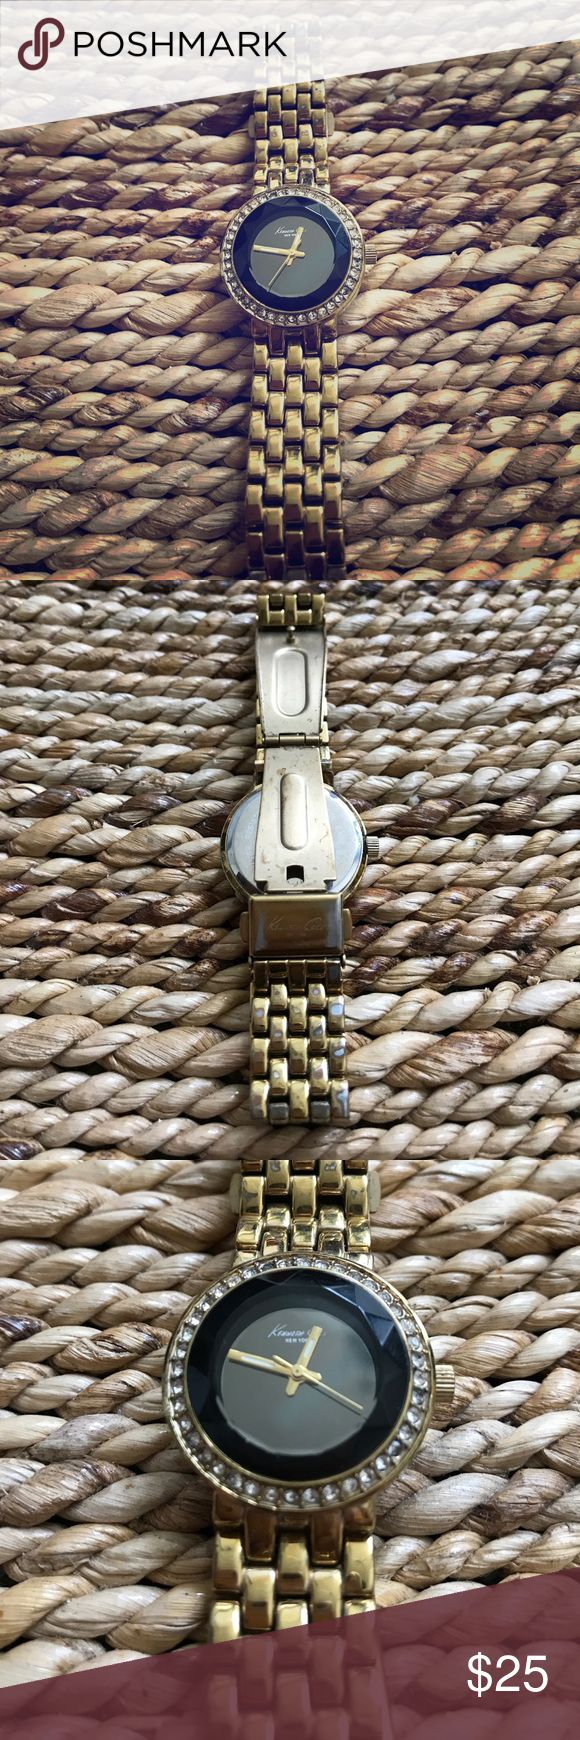 Kenneth Cole Ladies Gold Watch Classy Gold linked Watch with jeweled accented black face. Slightly worn on the bottom side of the Watch band. Battery still works! Kenneth Cole Accessories Watches